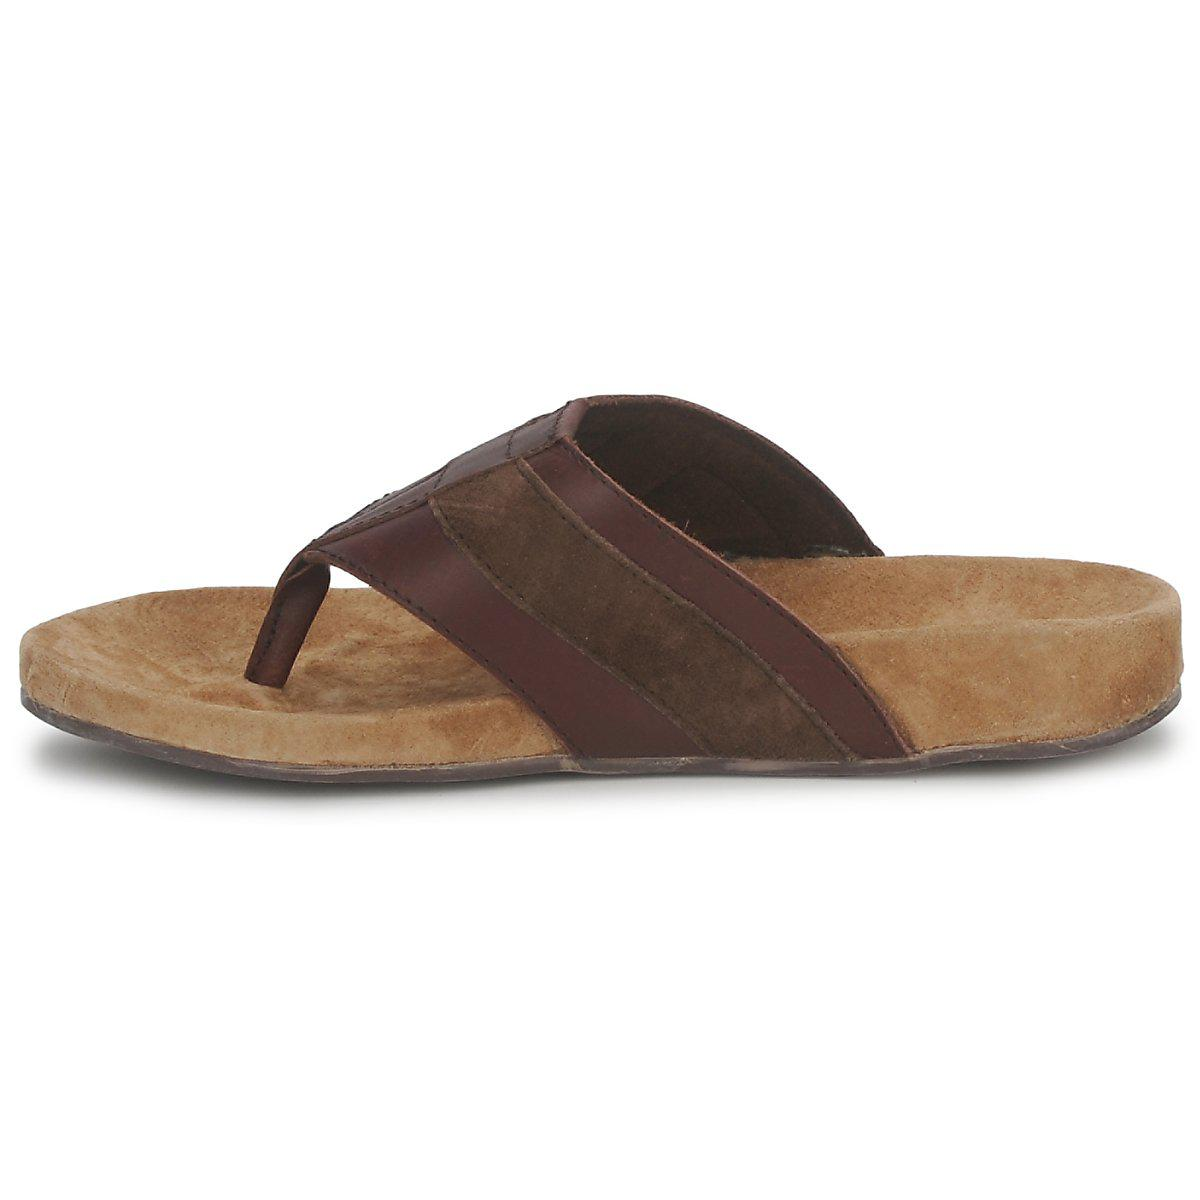 a644323b88 EMU Marlo Men's Flip Flops / Sandals (shoes) In Brown in Brown for ...